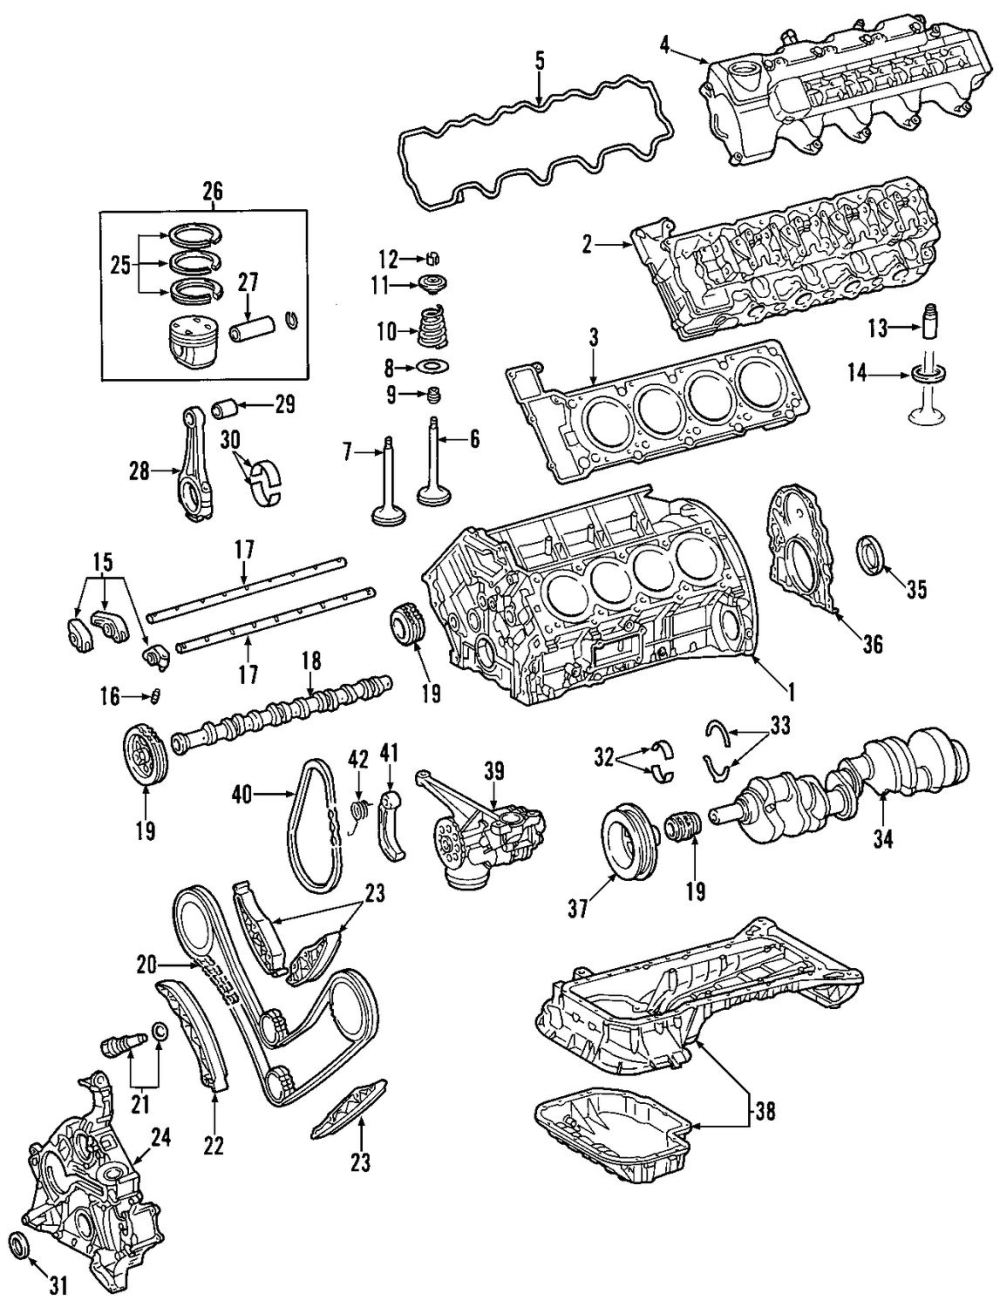 medium resolution of e320 engine diagram schema wiring diagram database mercedes benz 2003 e320 engine diagram